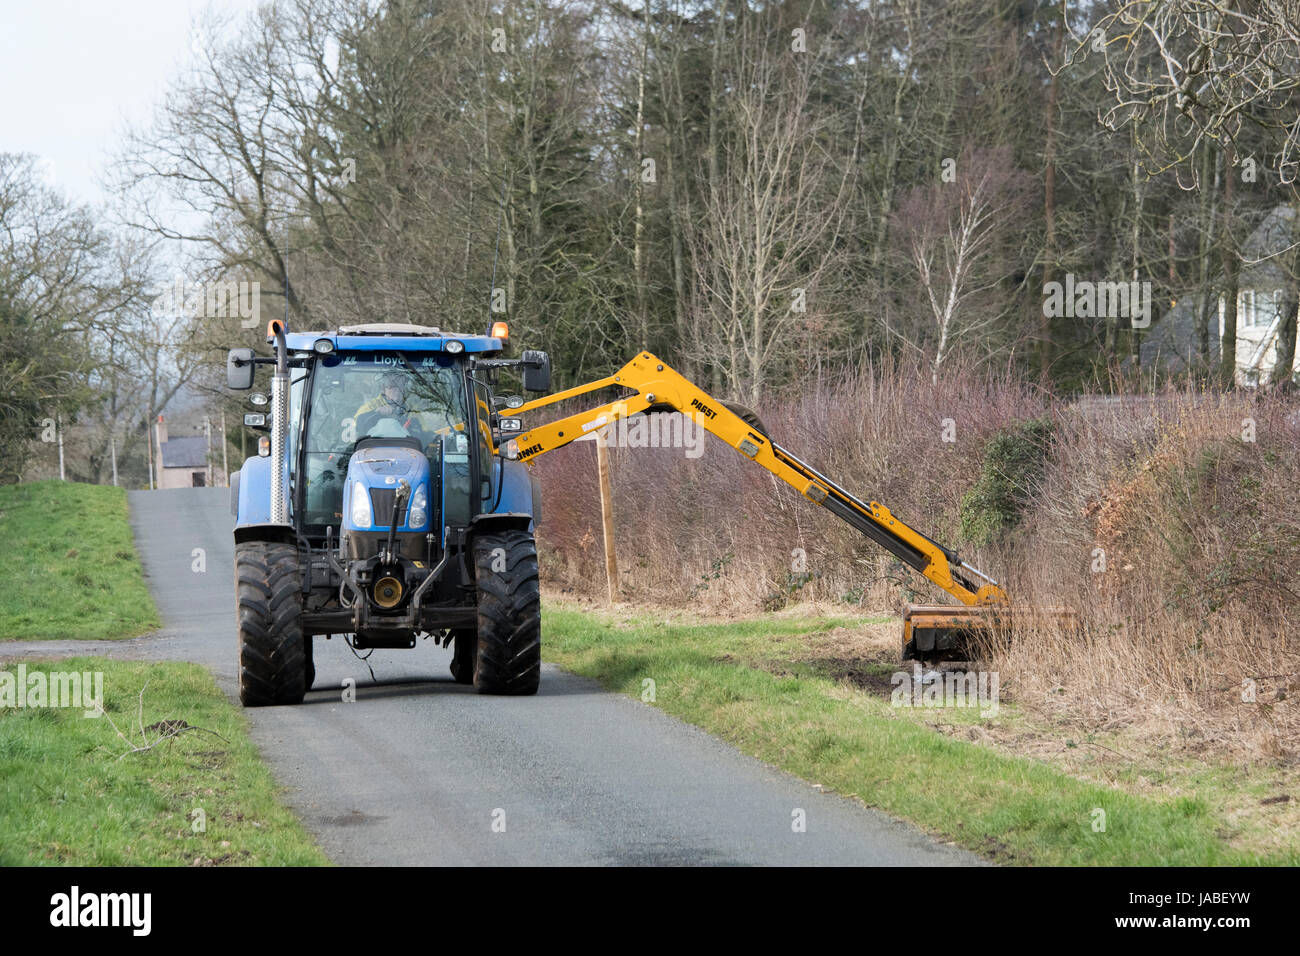 Hedge Cutting Tractor Stock Photos & Hedge Cutting Tractor